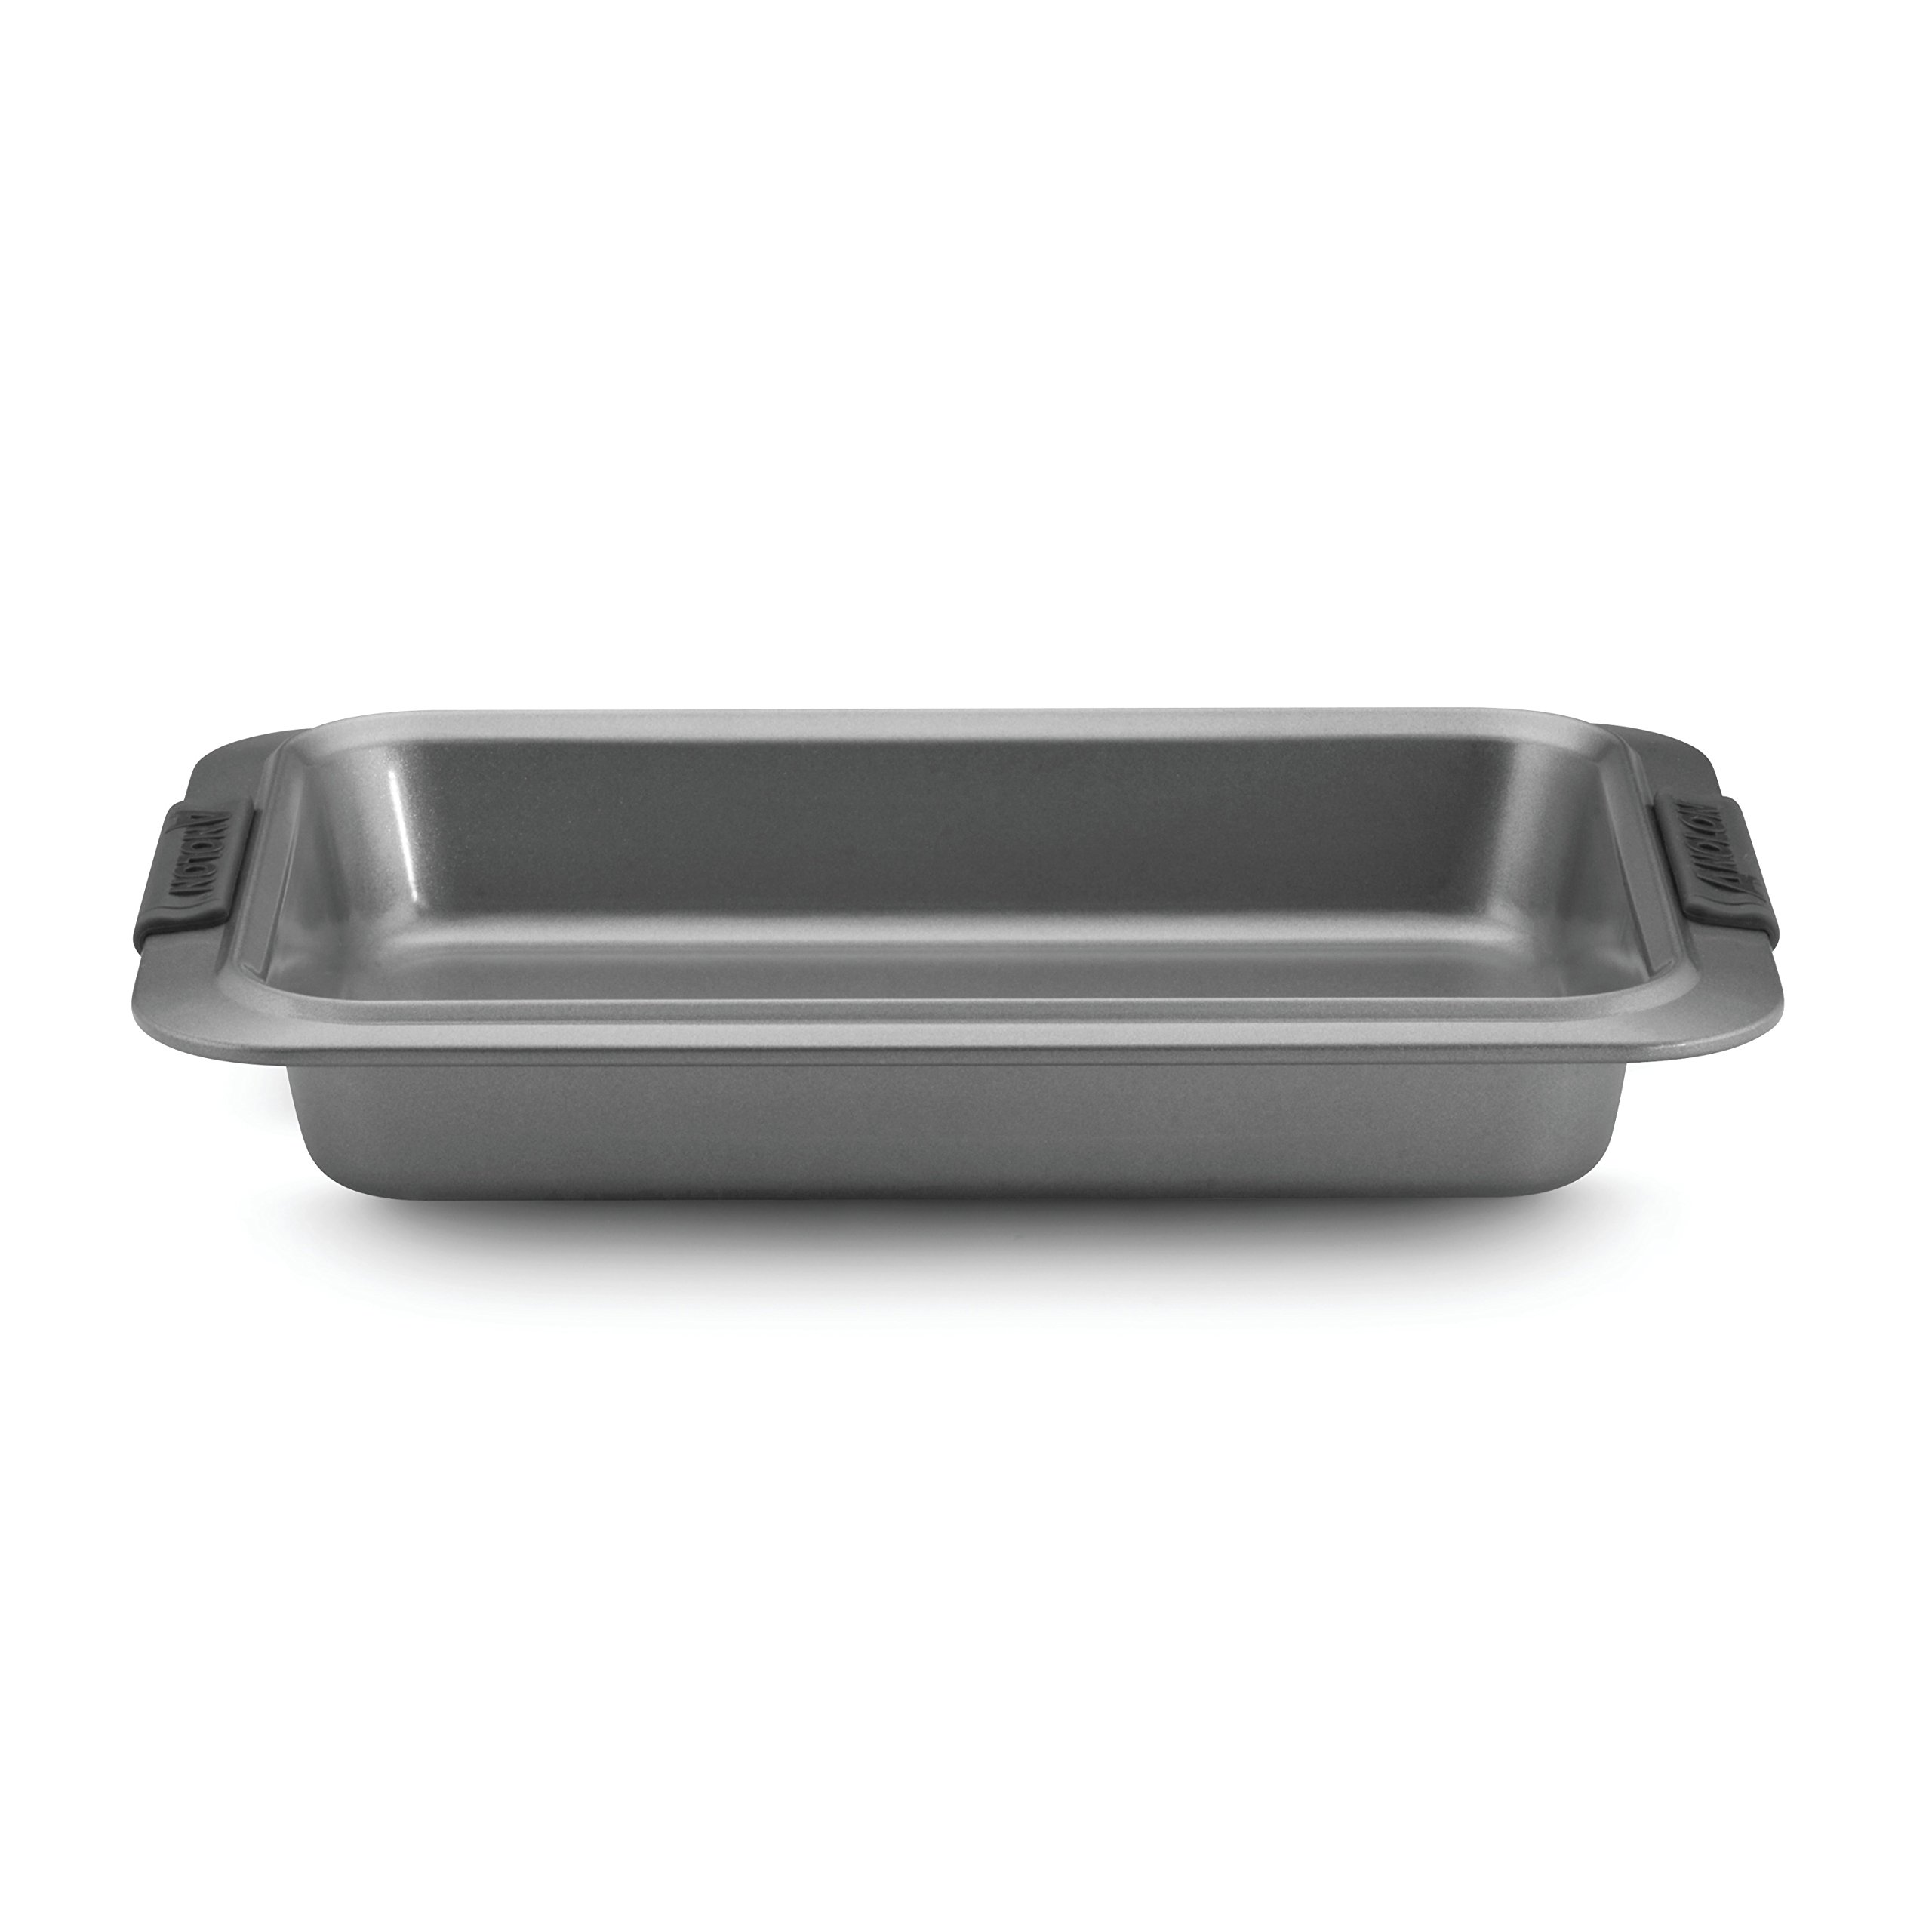 Anolon Advanced Nonstick Bakeware 9-Inch by 13-Inch Rectangular Cake Pan